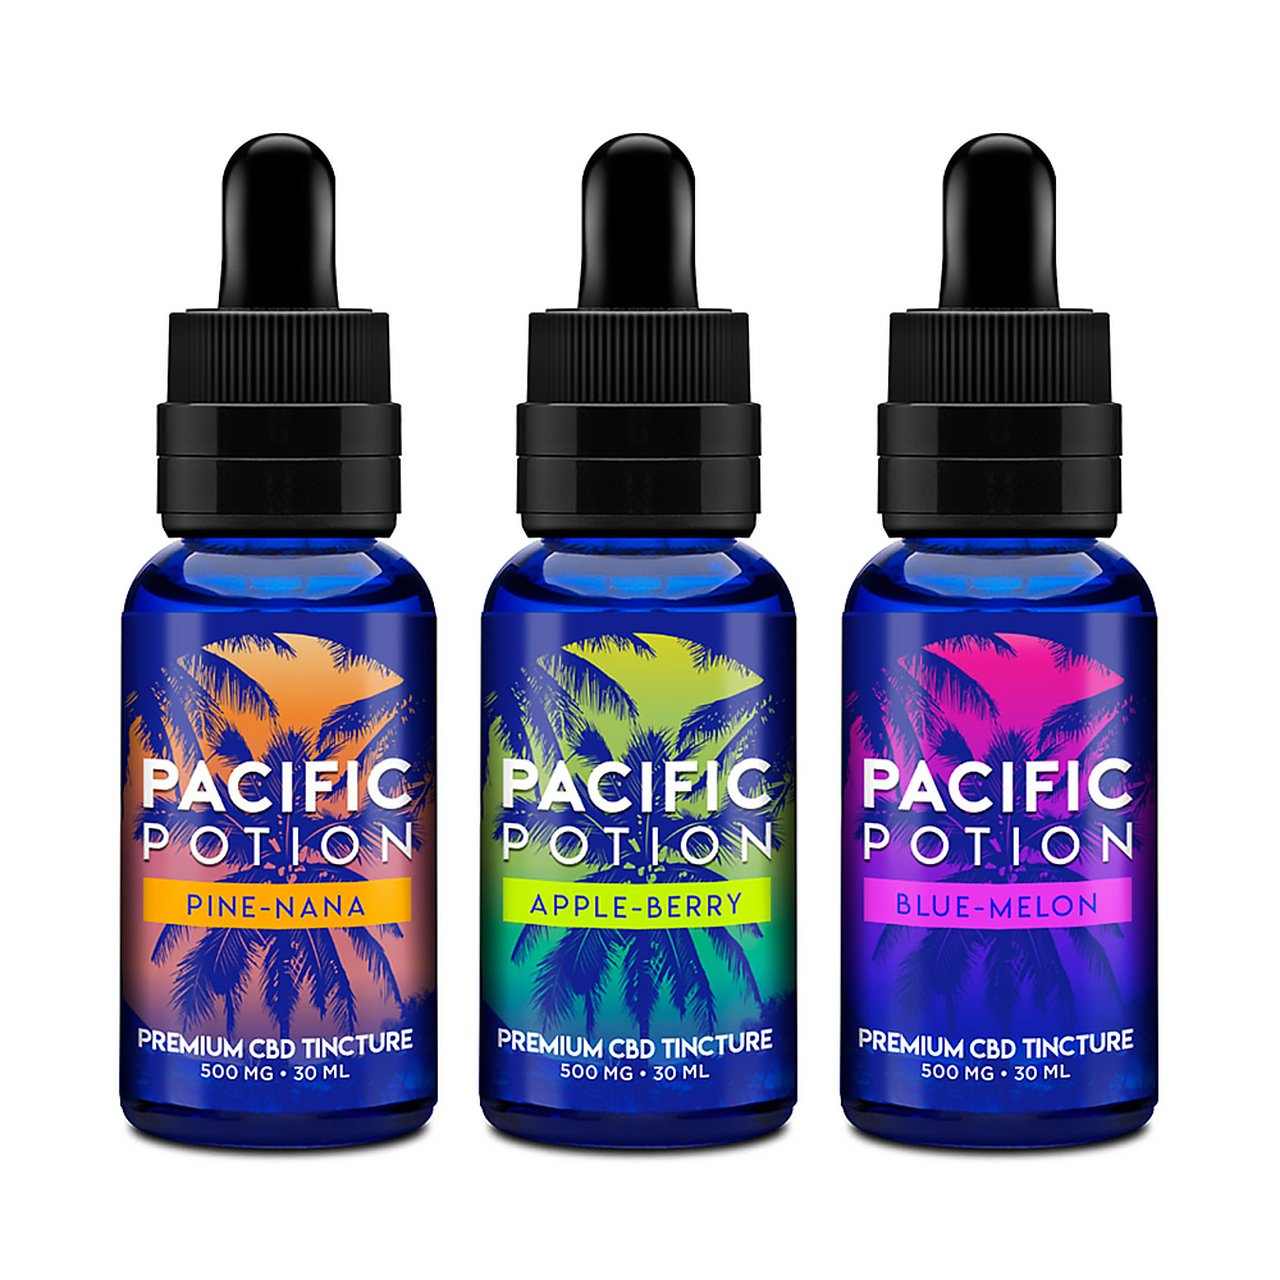 Pacific Potion 250mg CBD Tincture 30mL - Blue-Melon